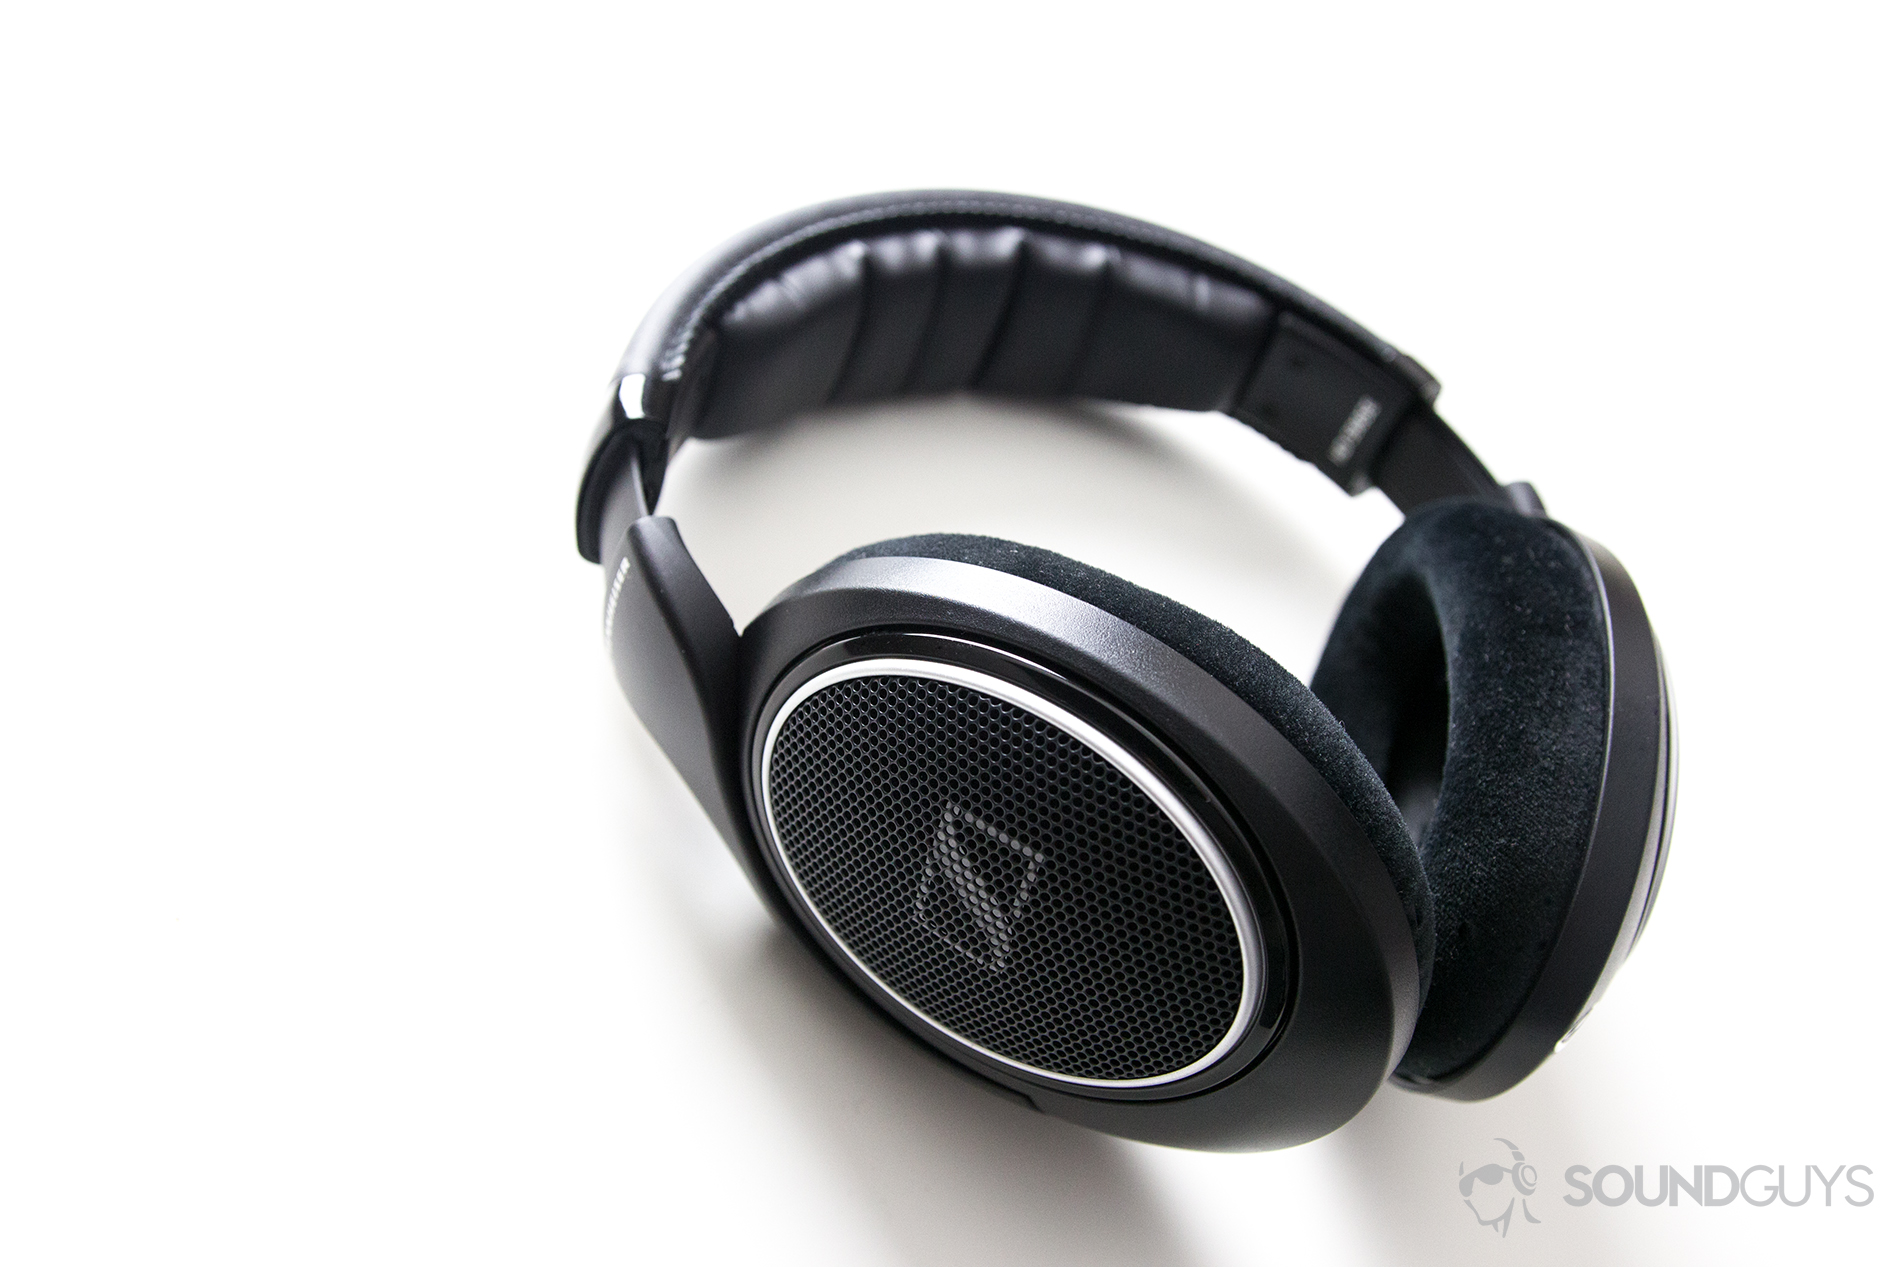 73dd10933e3 Sennheiser HD 598SE Review - SoundGuys